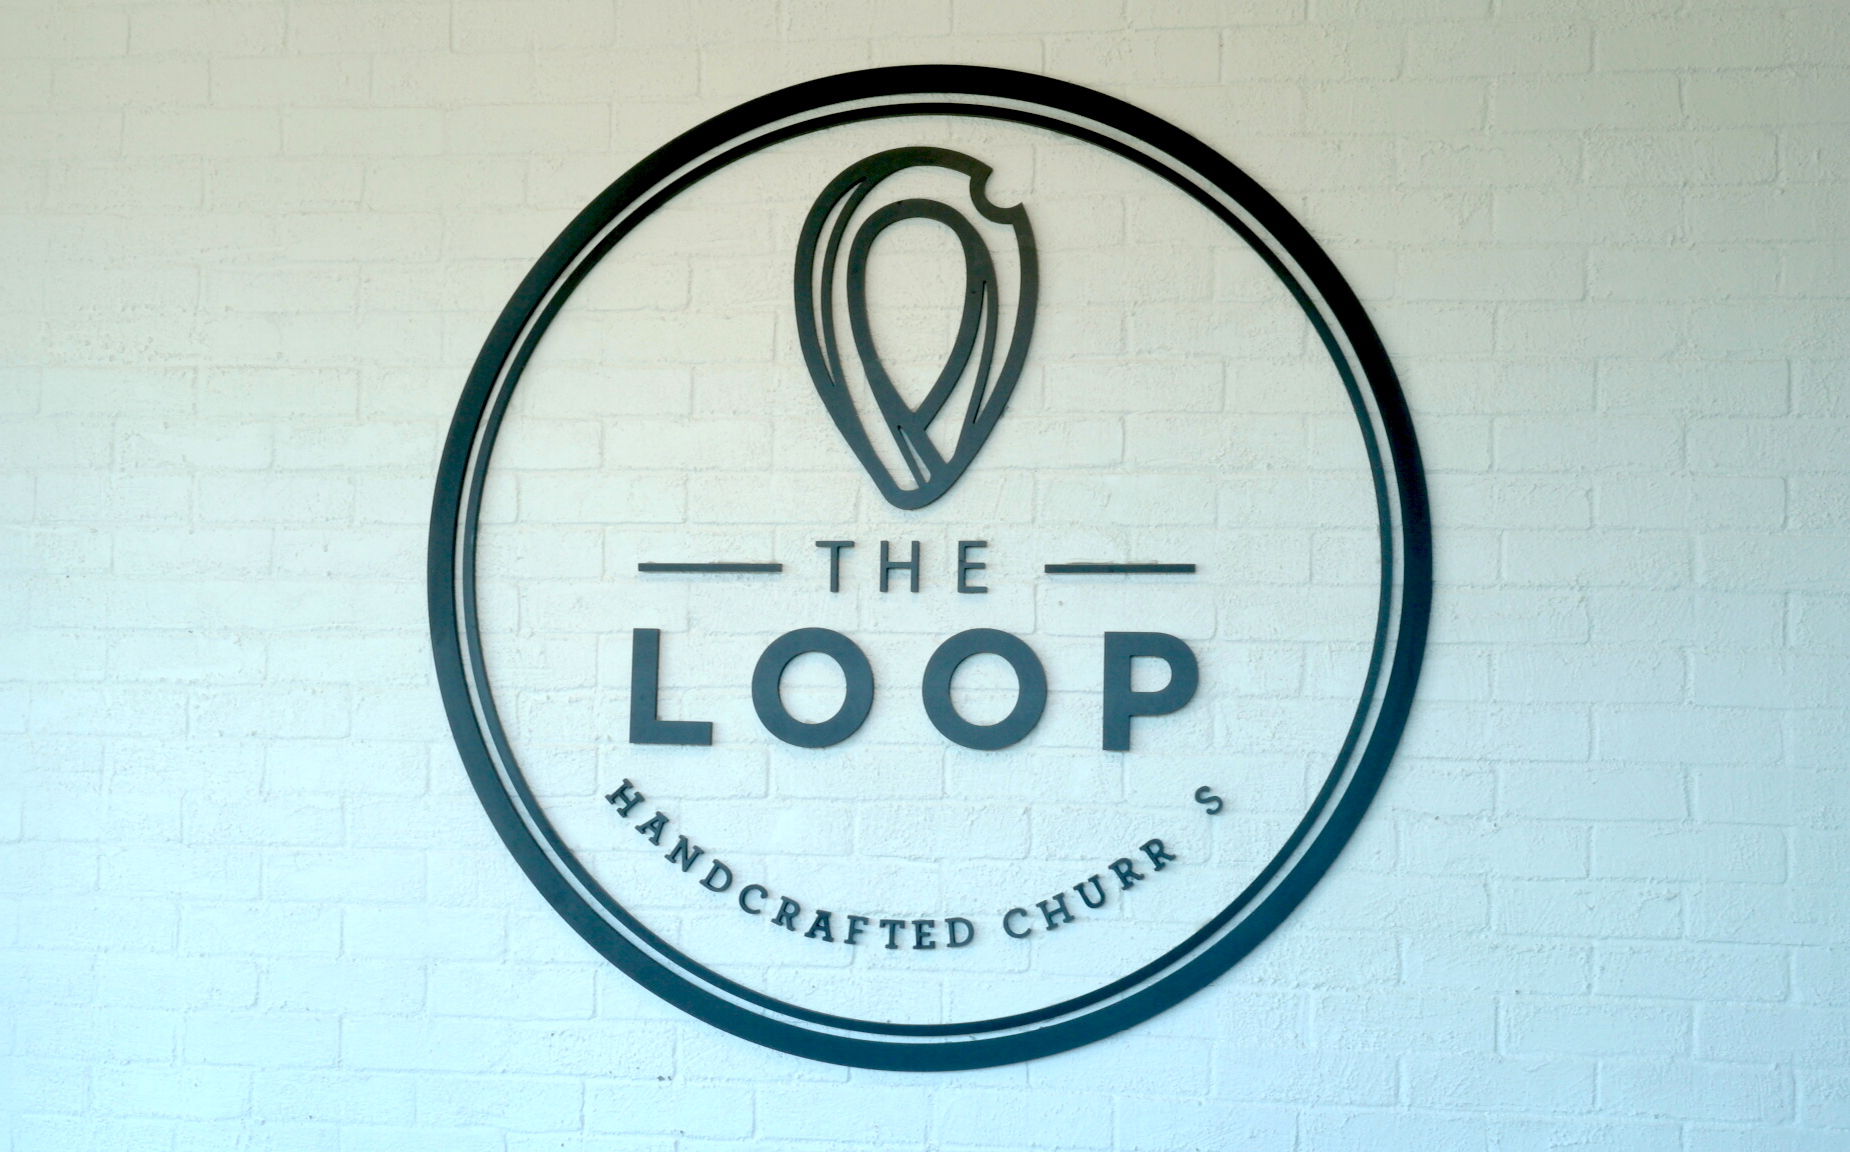 I always appreciate good walls for photo backdrops and The Loop is a food photographers dream.